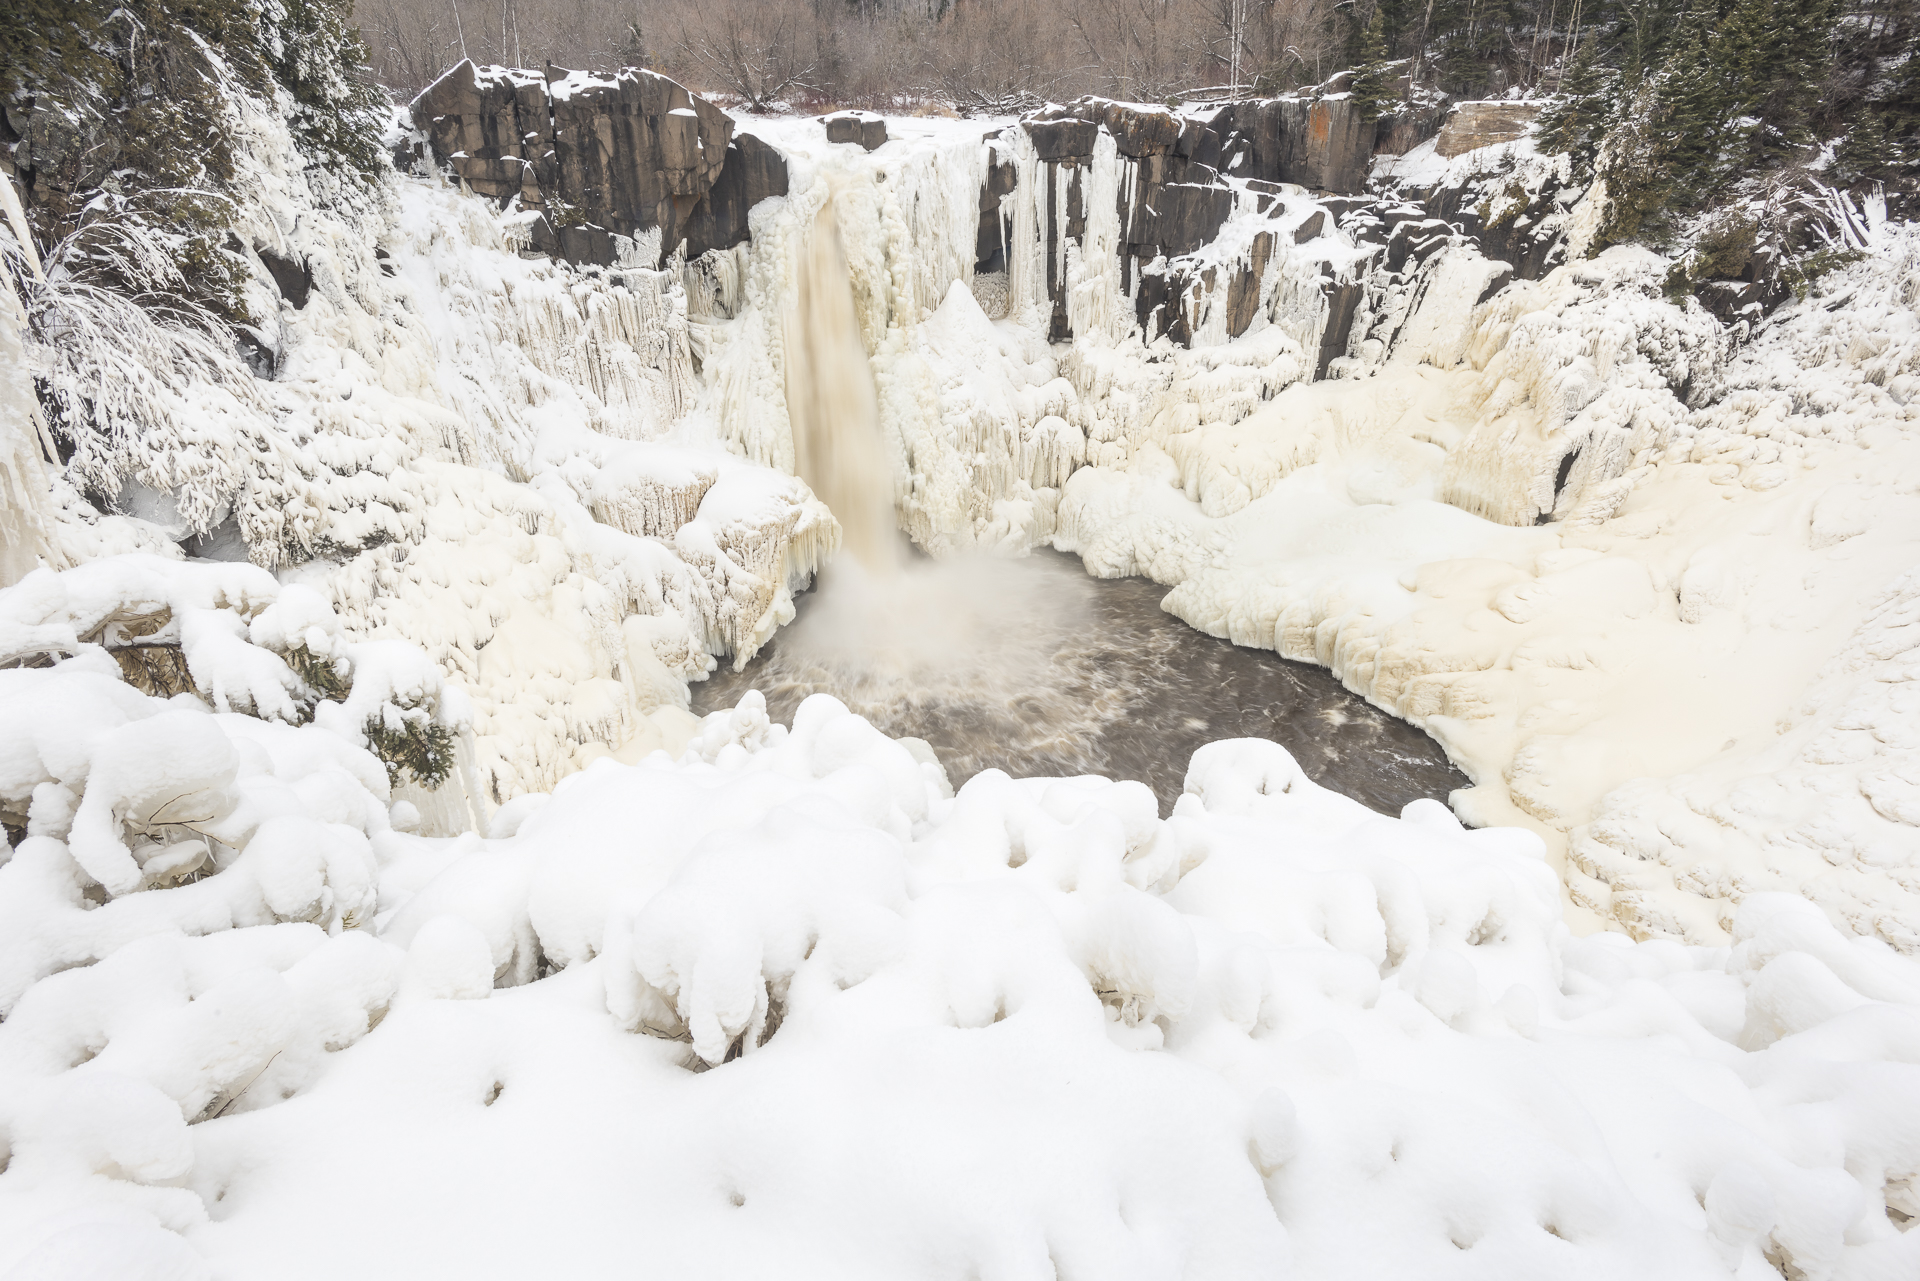 Winter wonderland: partially frozen Pigeon Falls.